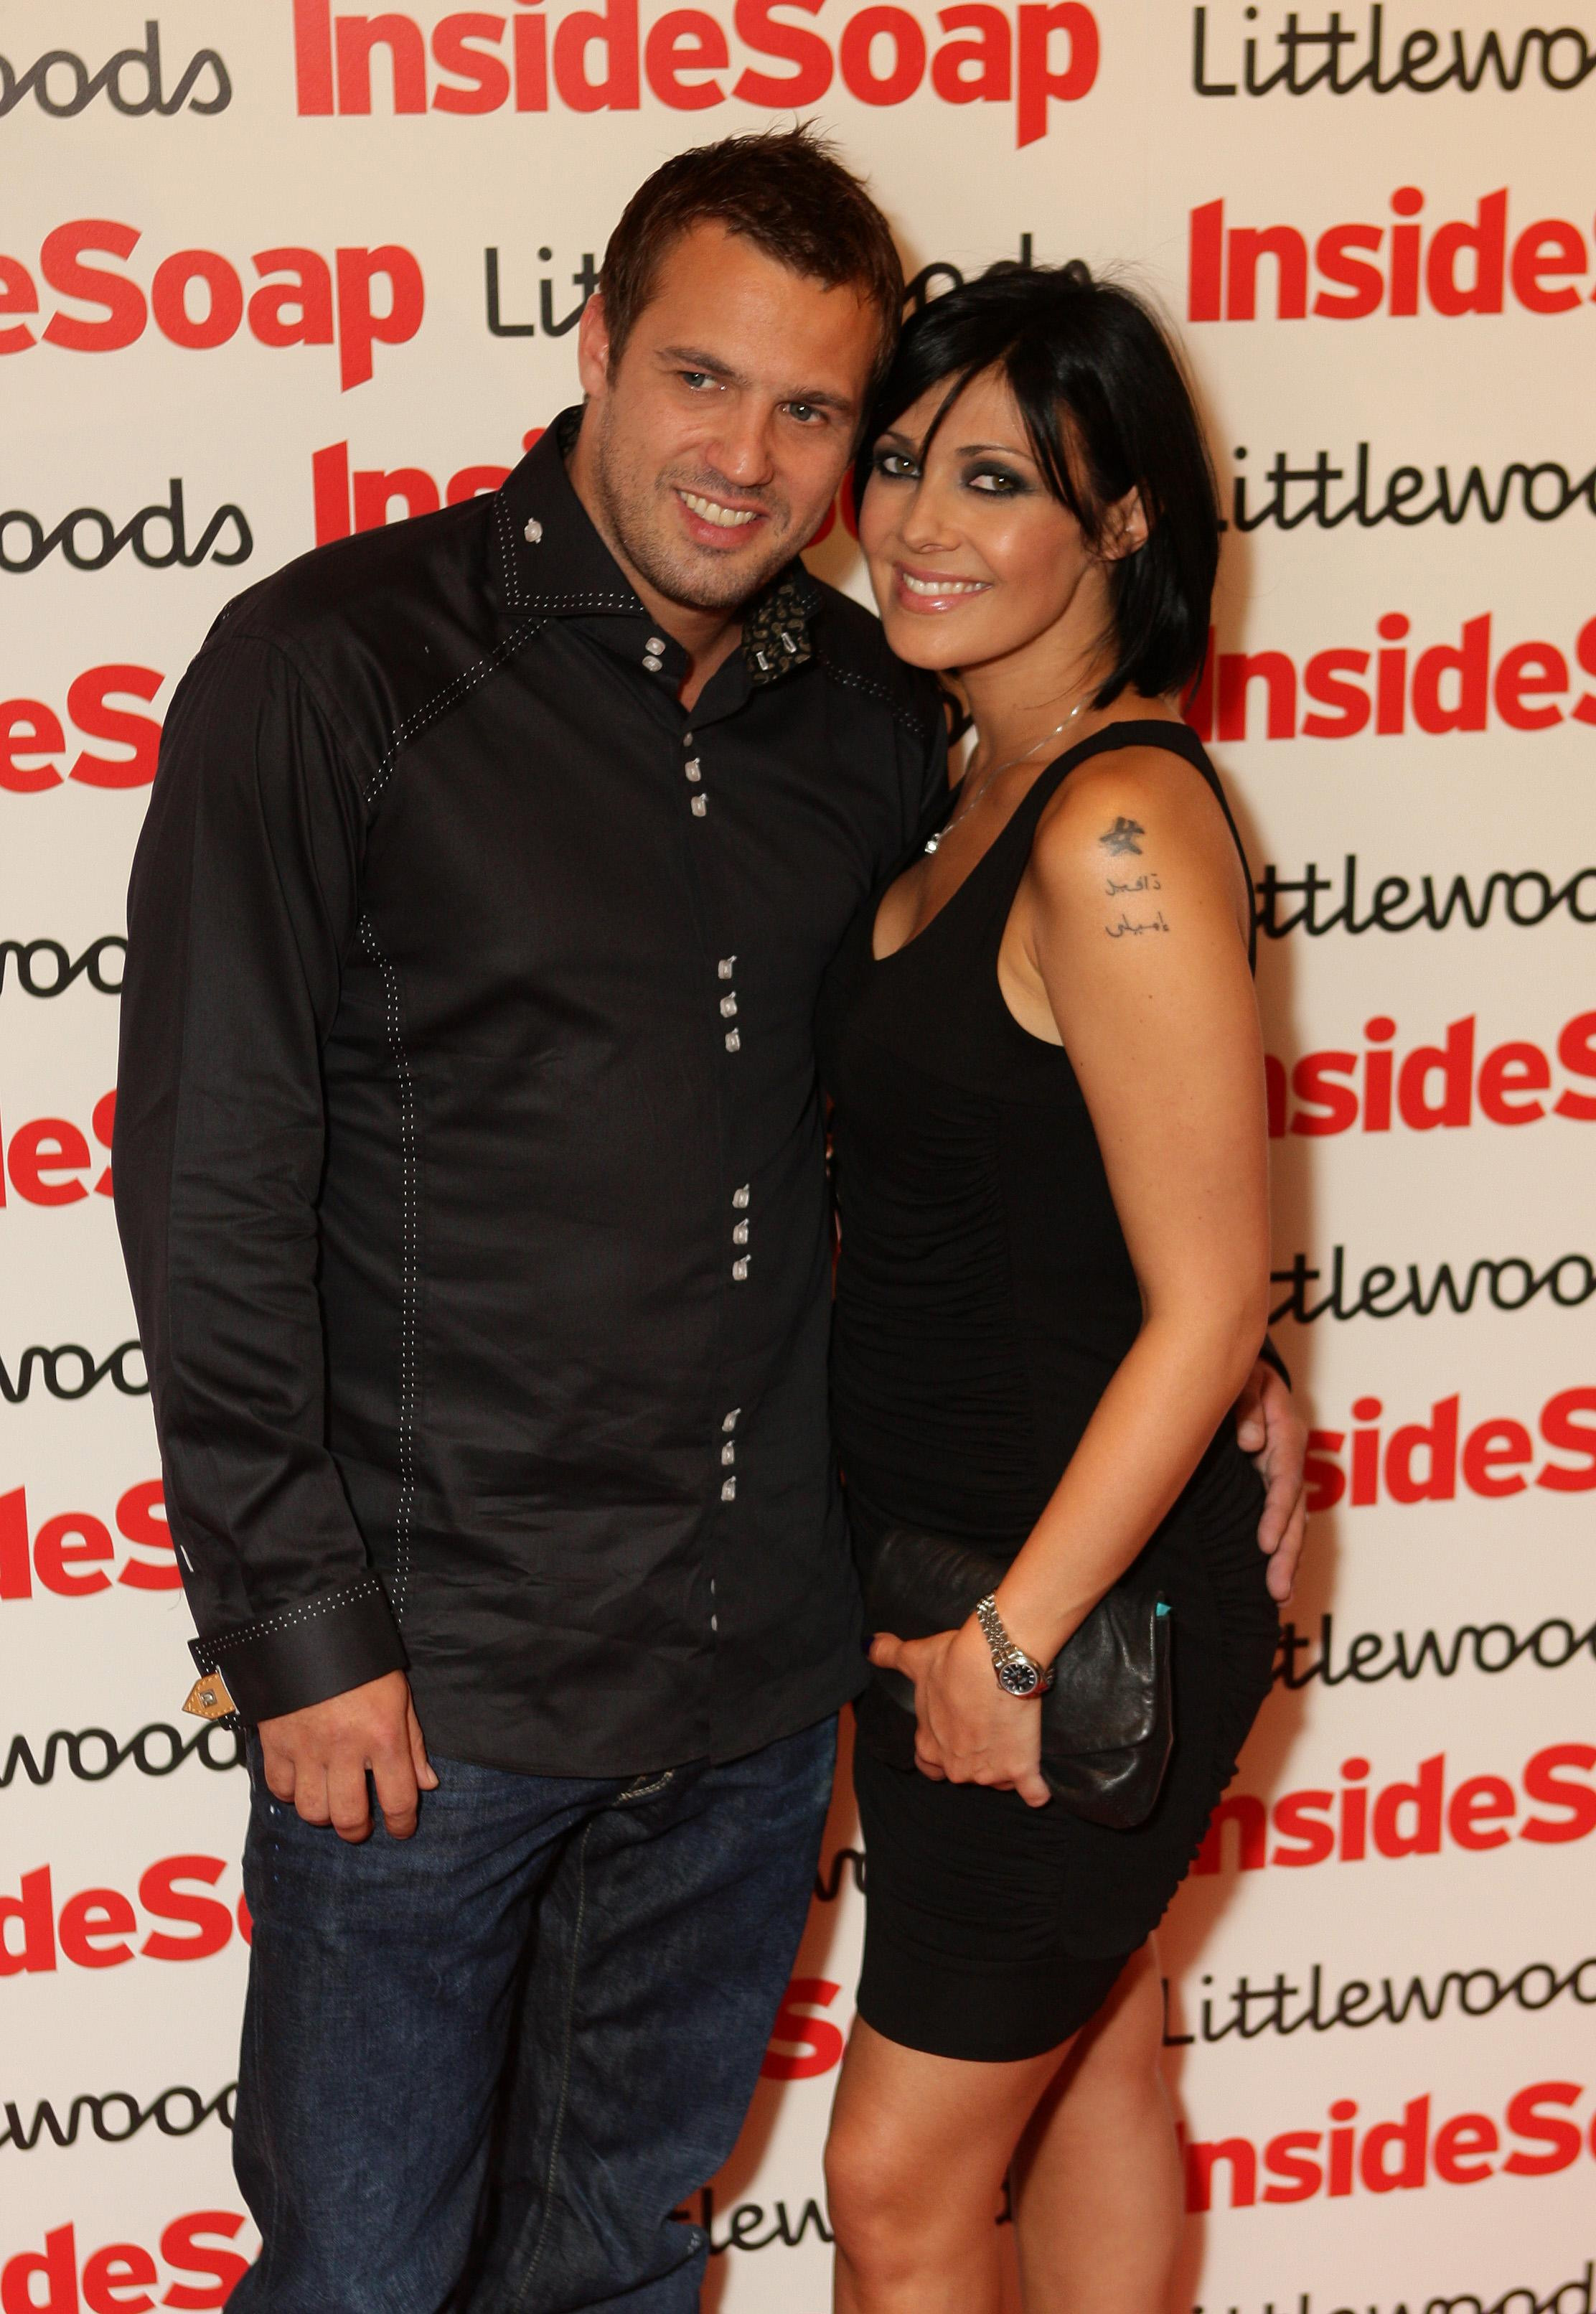 Kym Marsh and Jamie Lomas